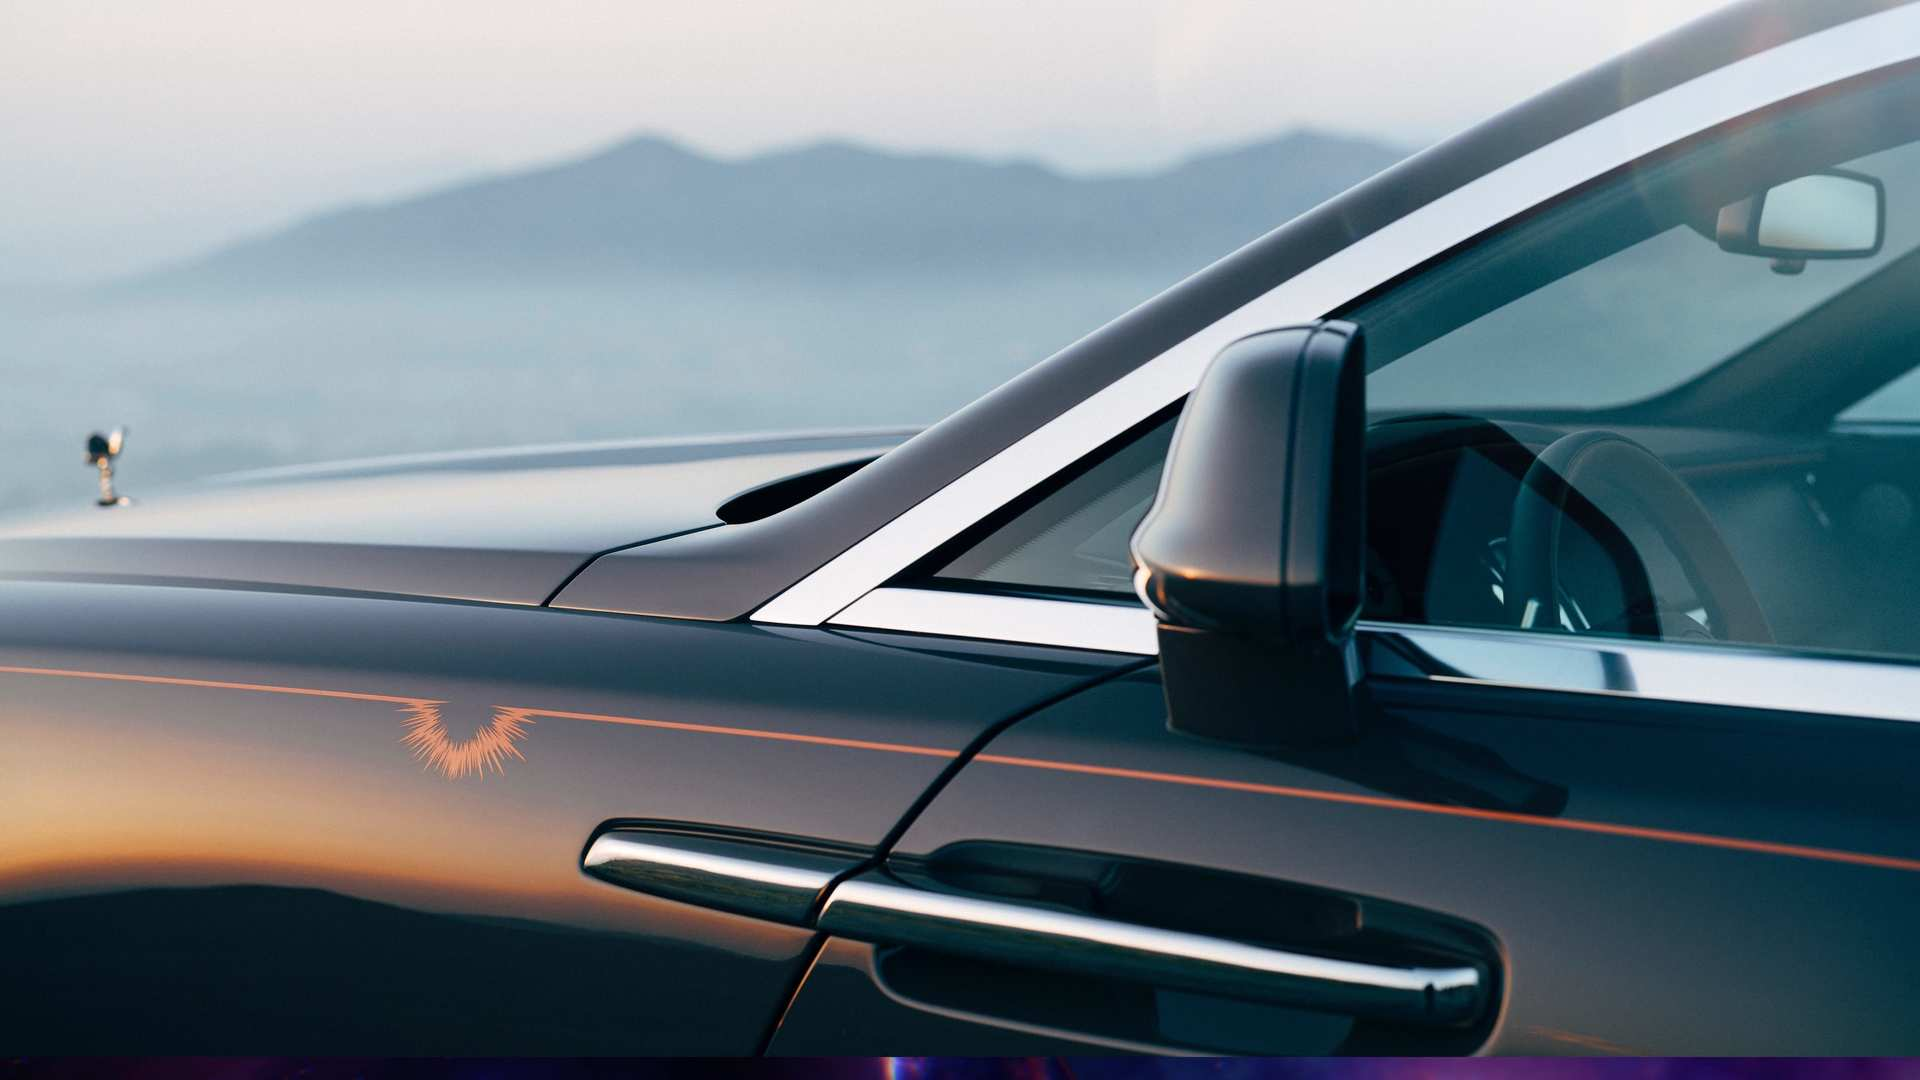 Rolls-Royce Wraith in detail side entry showing wing mirror driver side, reflection of red sunset on car door and faint mountains in background